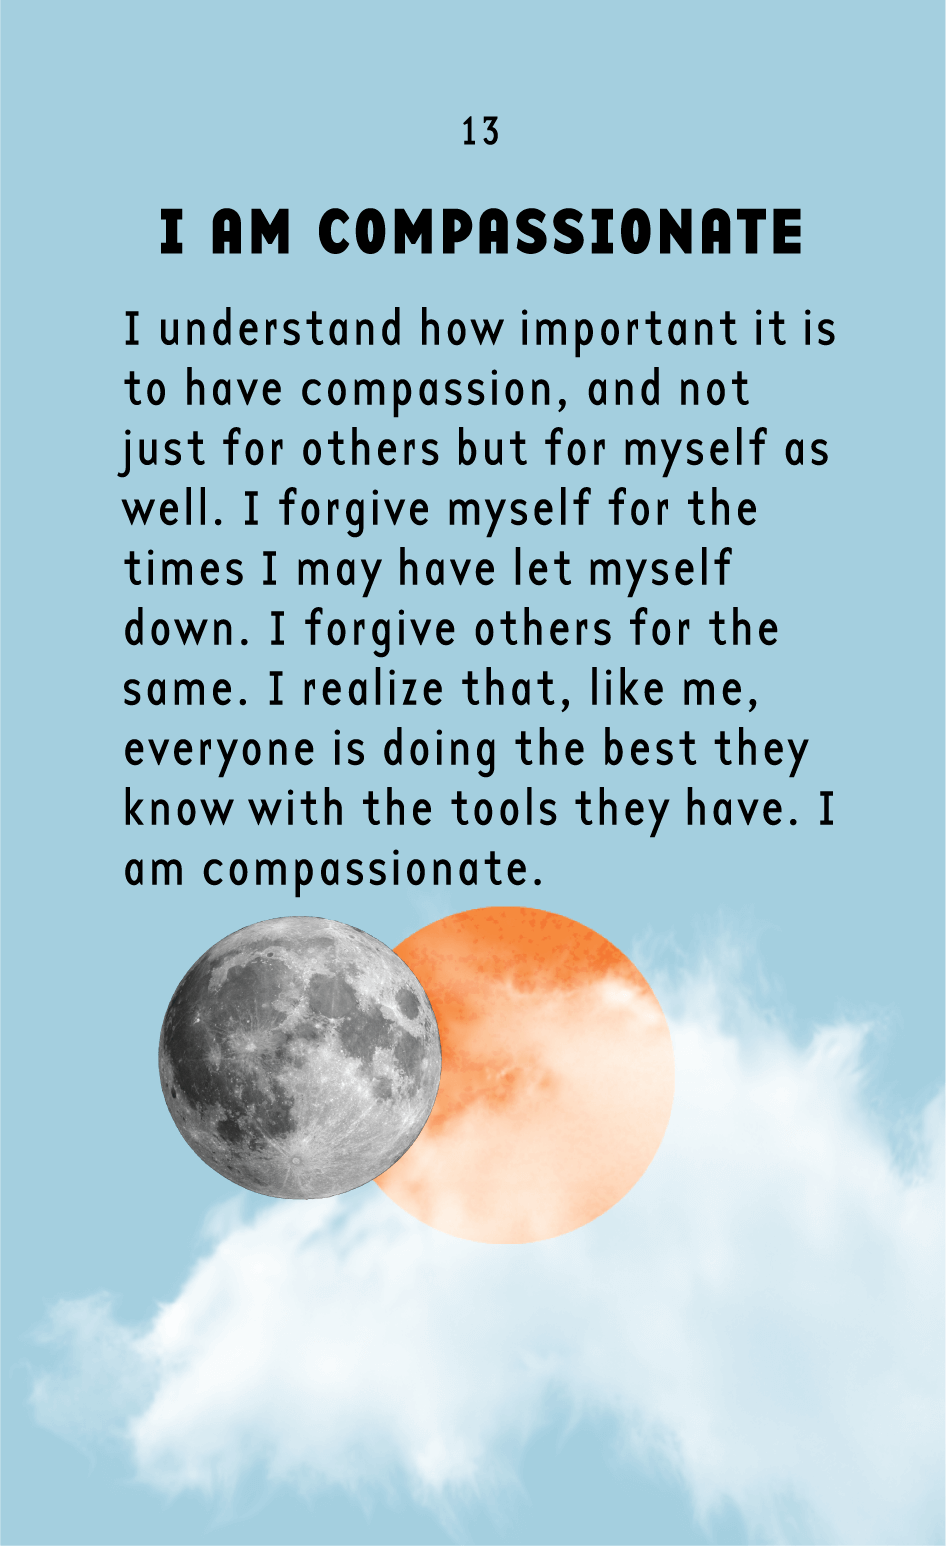 COMPASSION   You get to make mistakes without beating yourself up. And, you know what else? Allowing others that same freedom is freeing for you too.